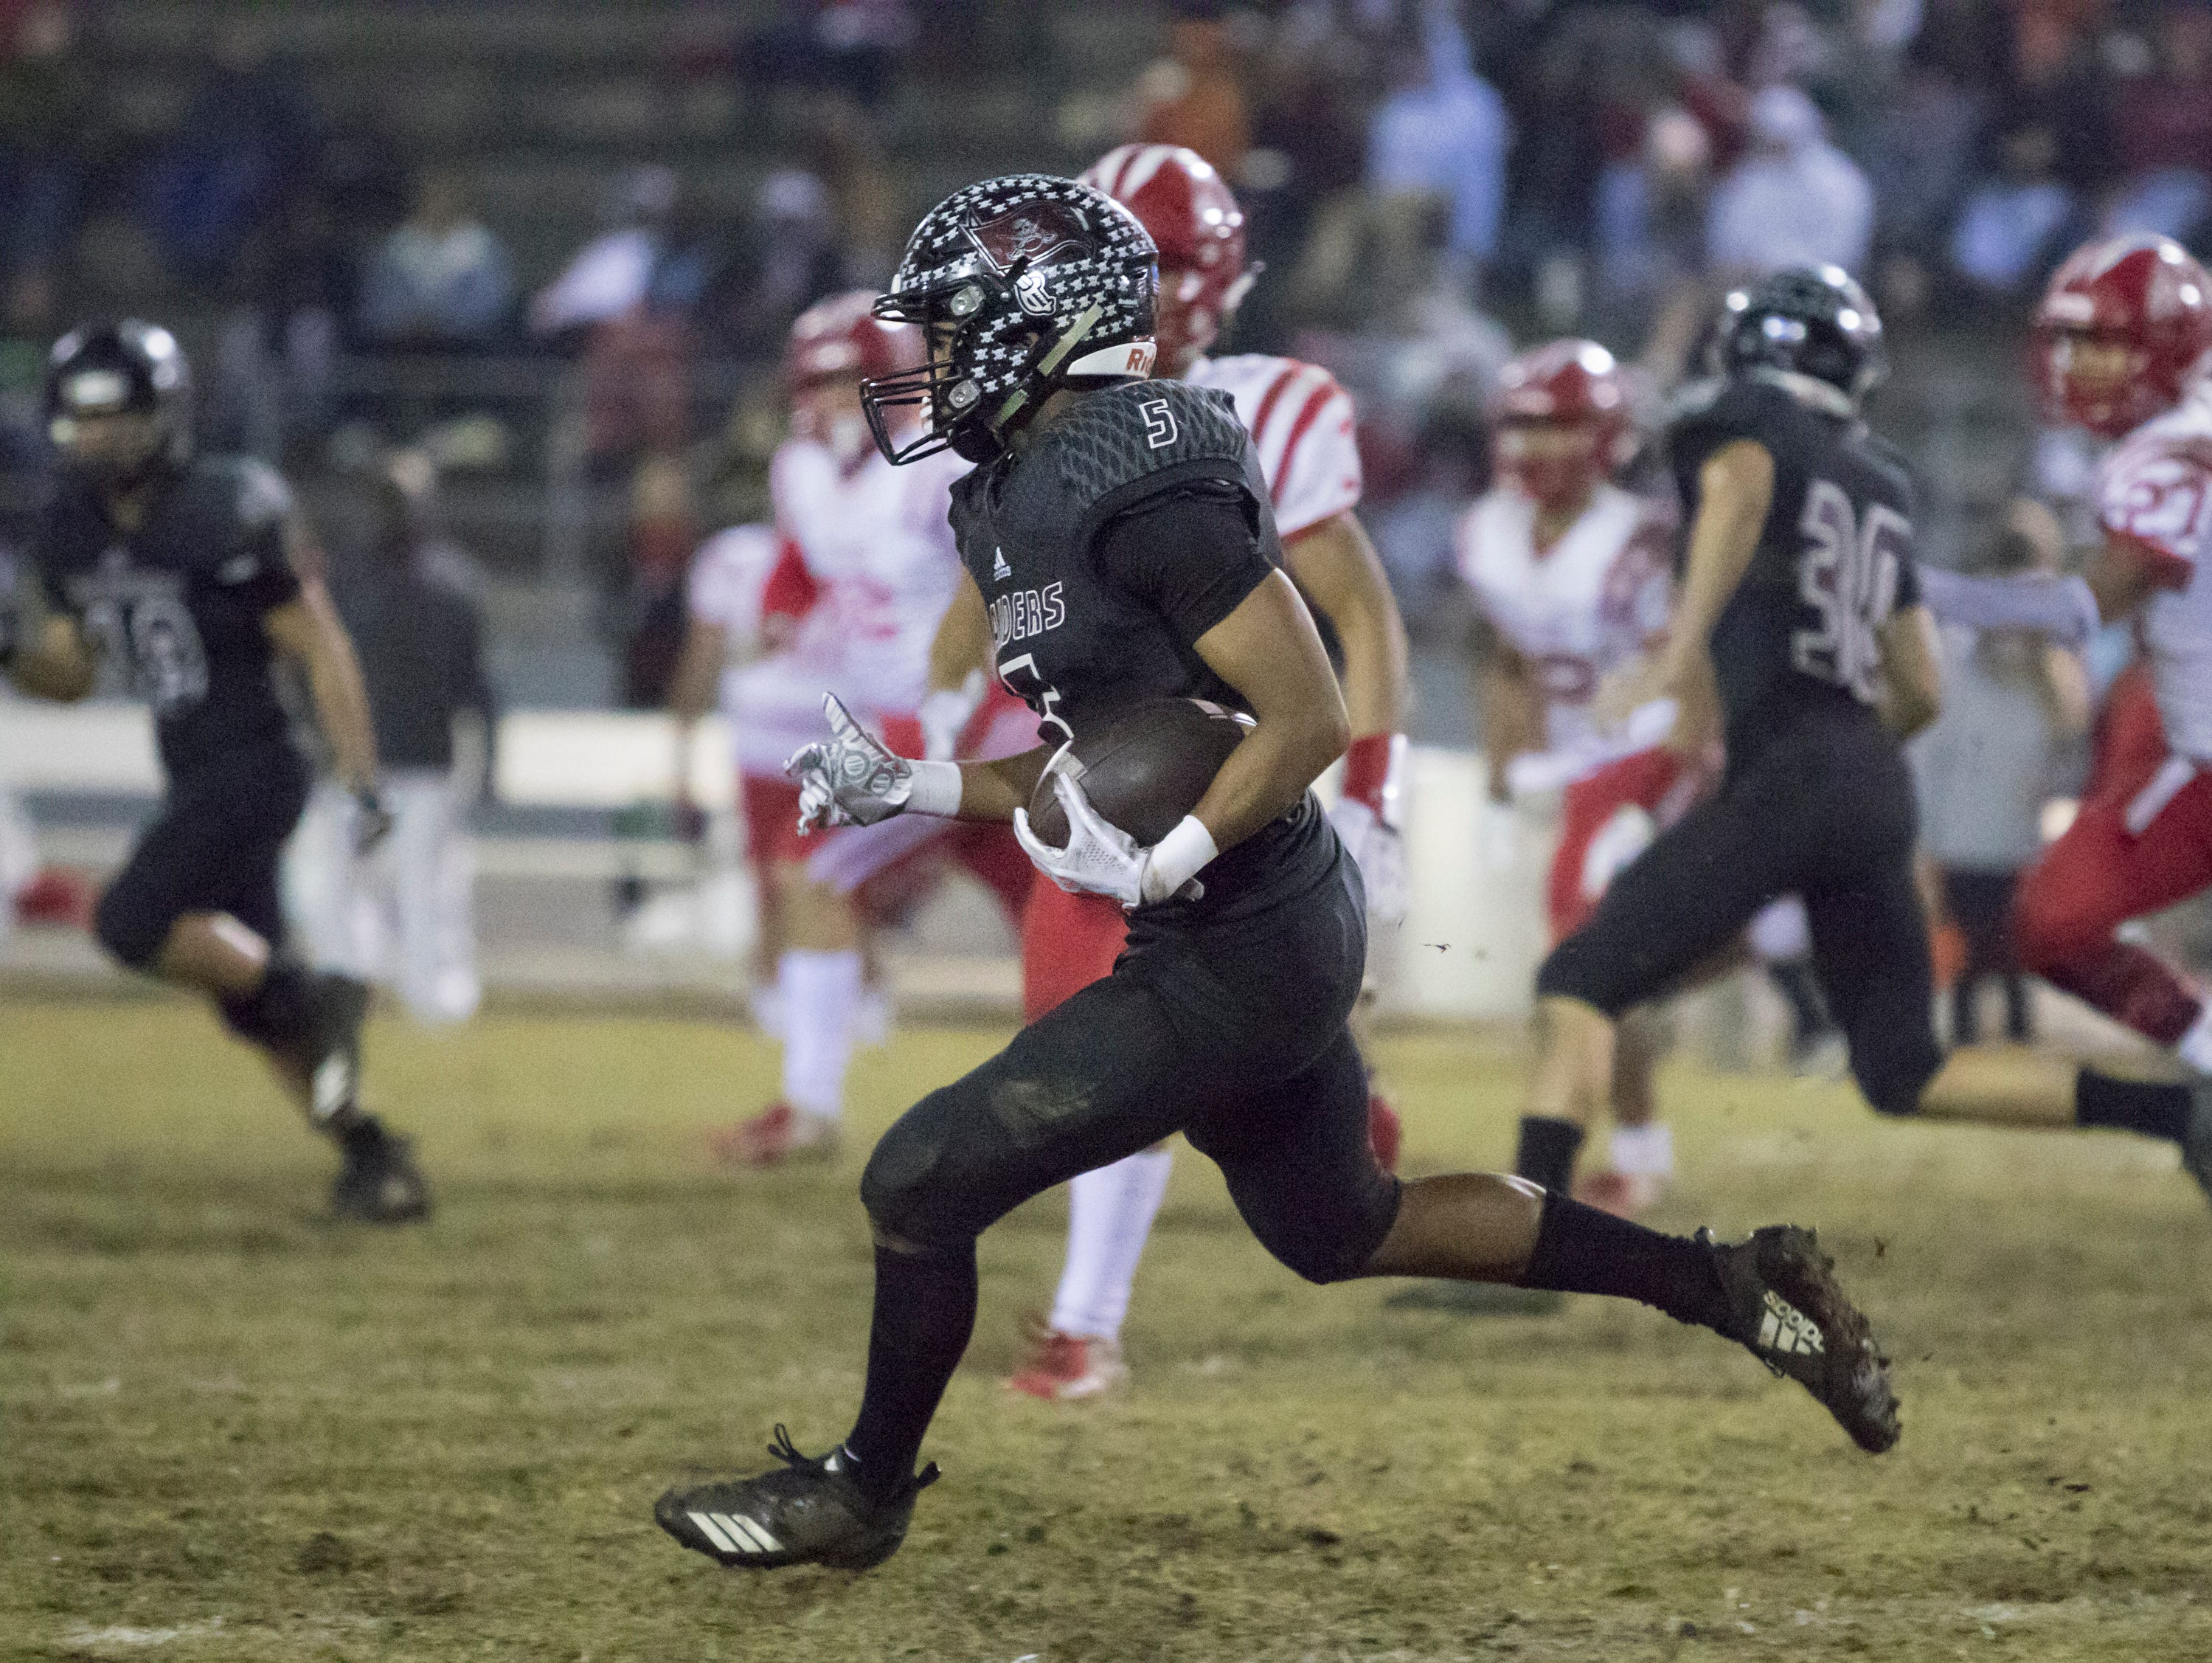 Dante Wright (5) carries the ball during the Crestview vs Navarre playoff football game at Navarre High School on Friday, November 23, 2018.